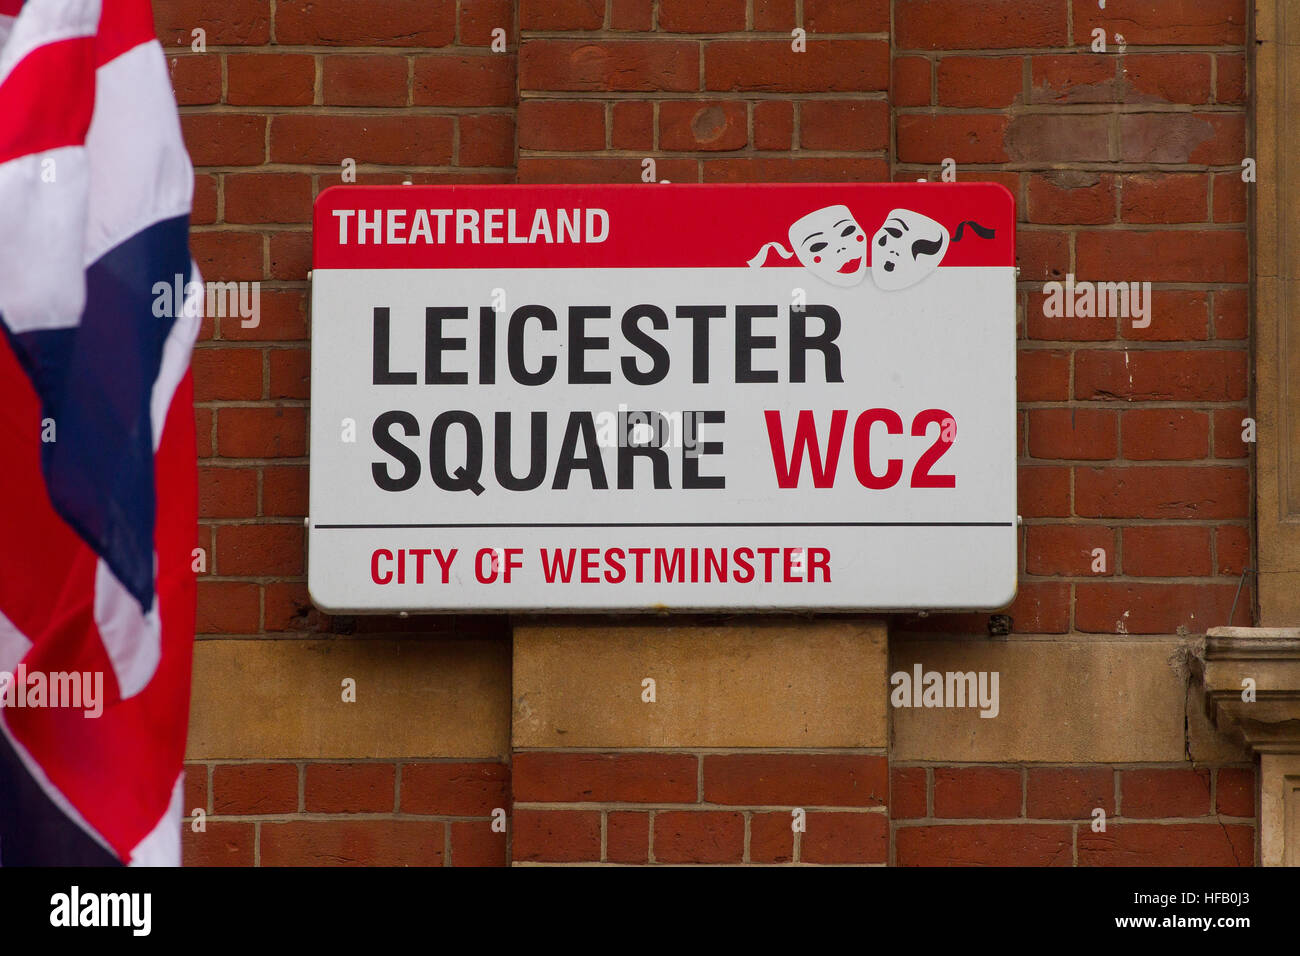 General View GV of Leicester Square theatreland street sign with a Union Jack Flag, London WC2 - Stock Image